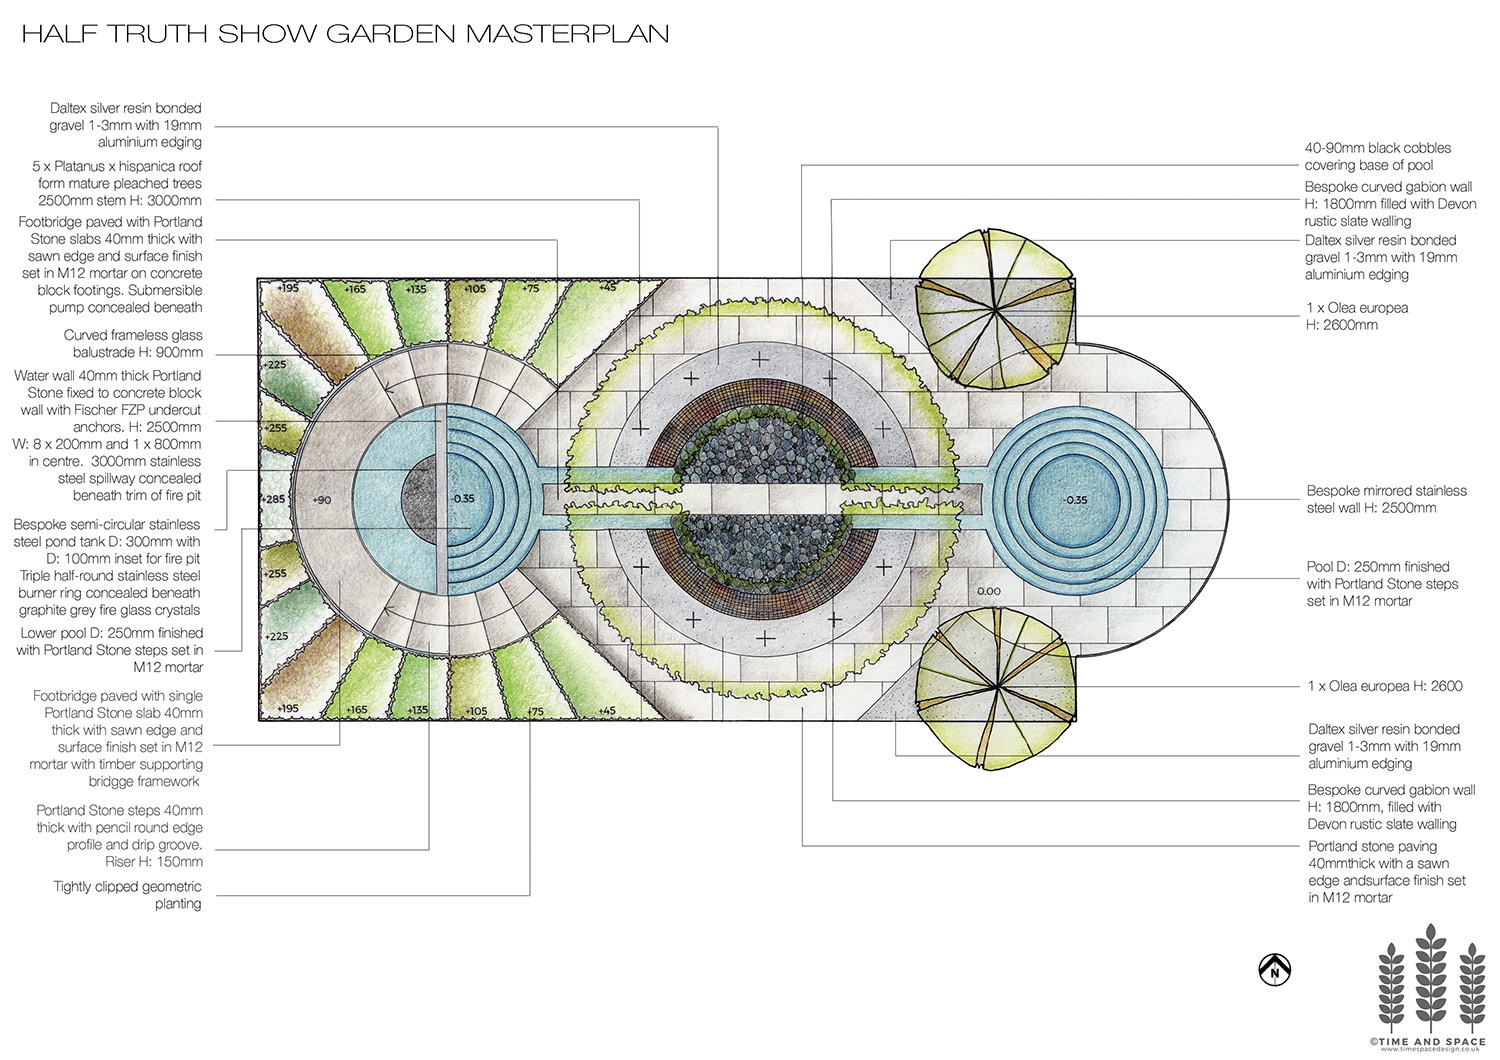 Half-truth show garden masterplan